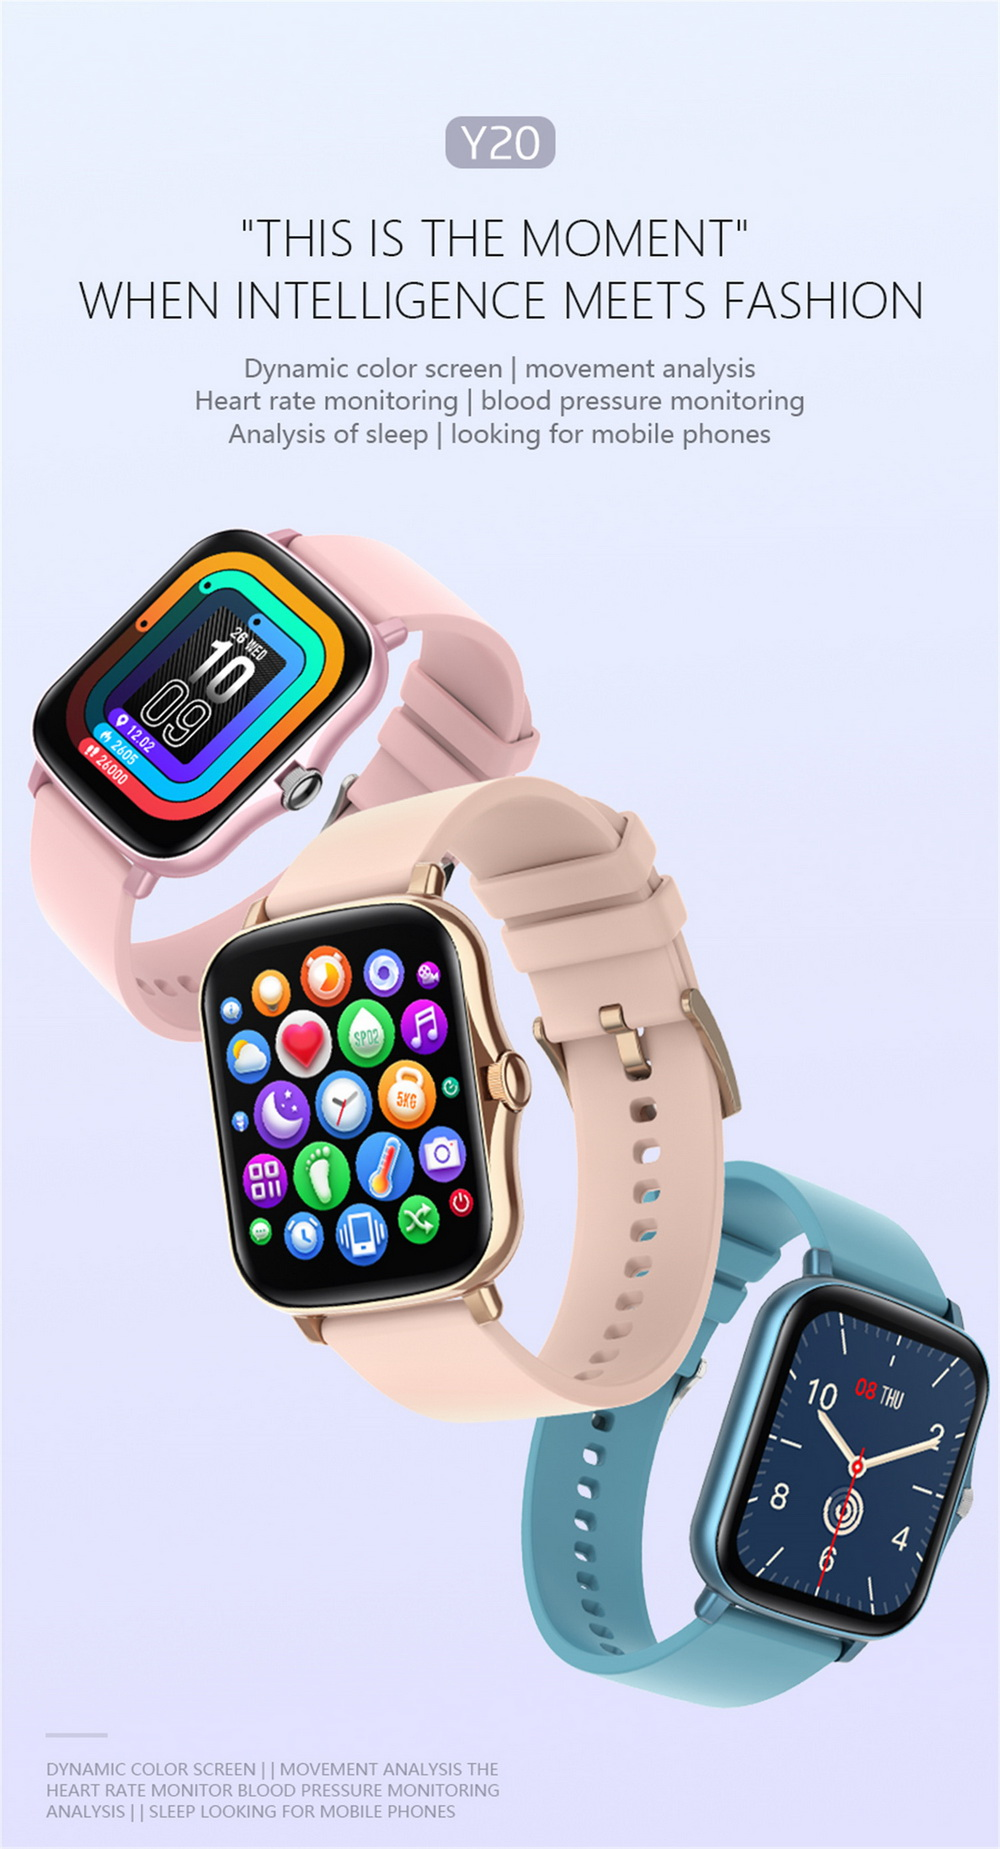 Y20 Smart Watch 1.7 inch Large Screen Rotation Button SME Heart Rate Blood Pressure Message Remote Control - Blue